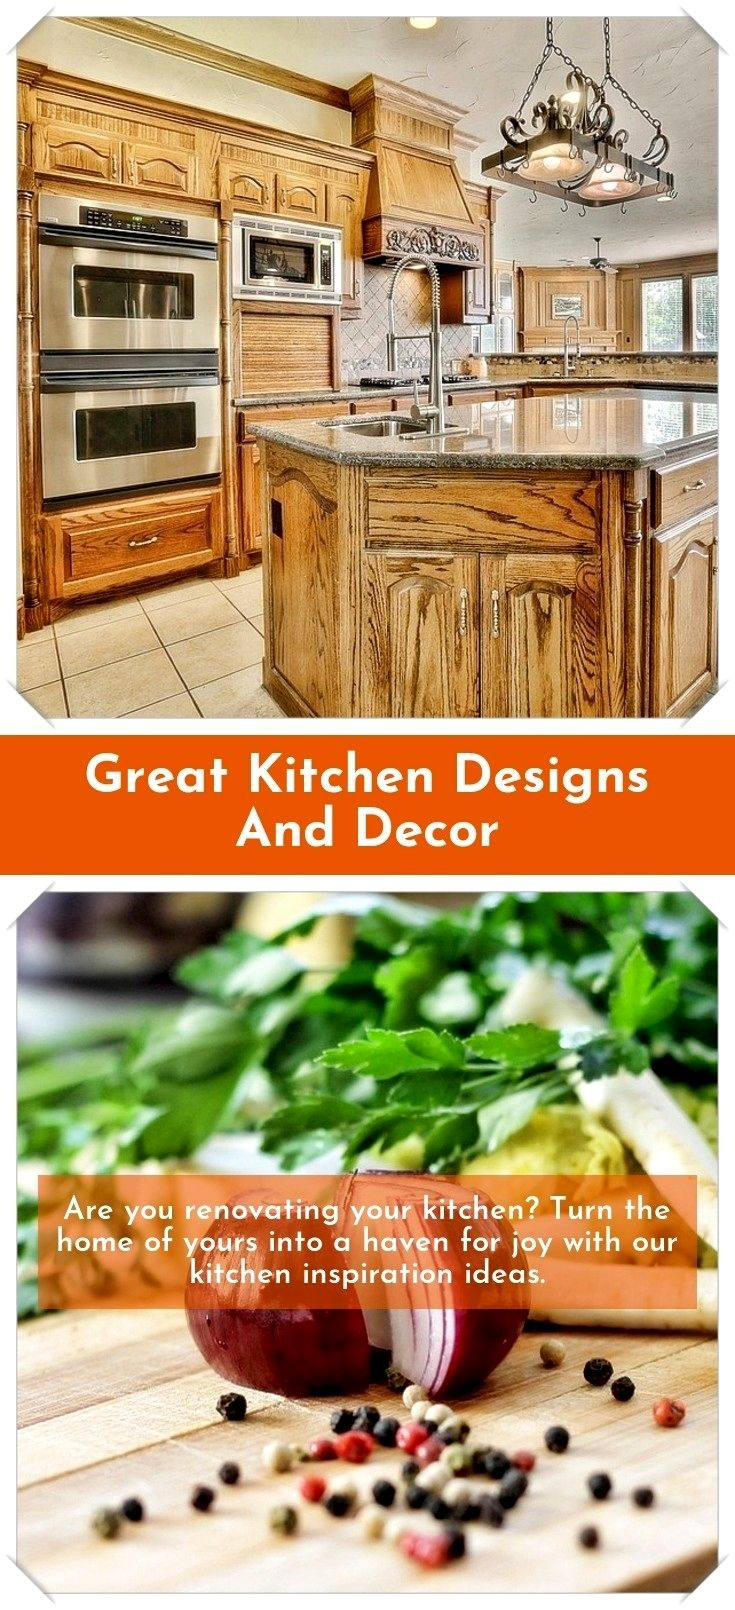 Design Your Own Kitchen: Easy Kitchen Decor And Design Ideas: All Set To Get